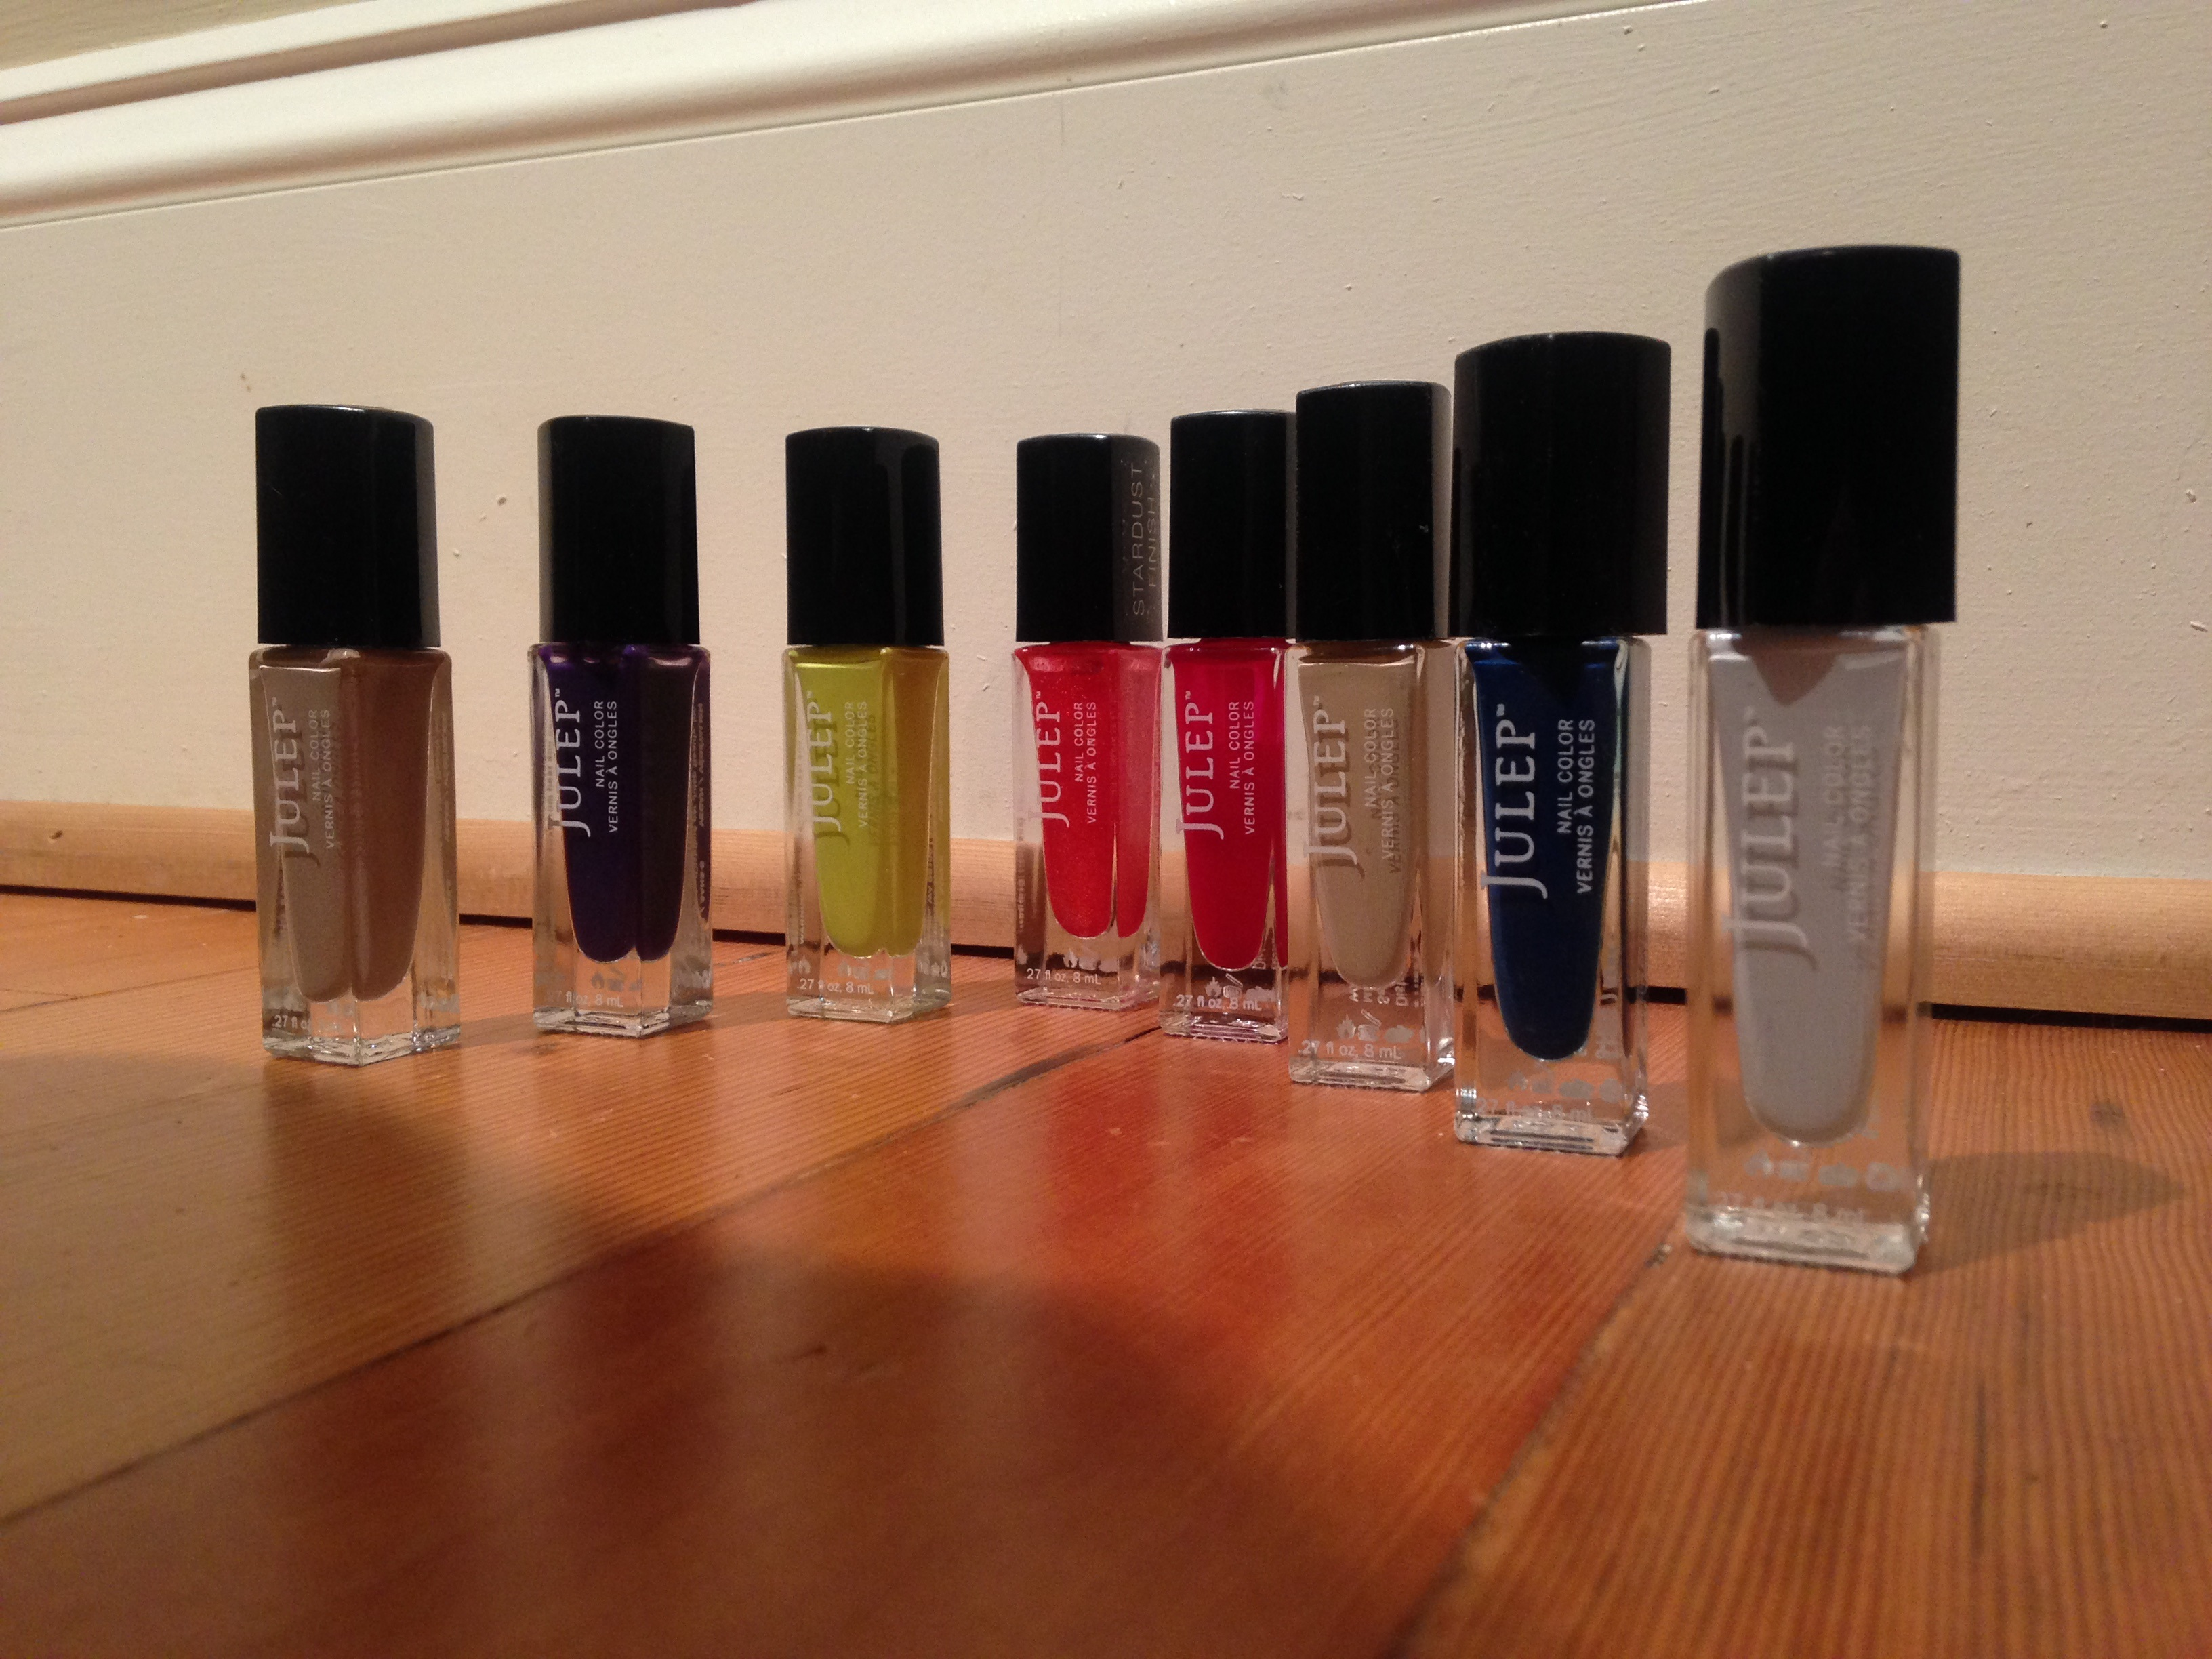 Our writer's personal collection of Julep nail polishes. (Lauren Terry)